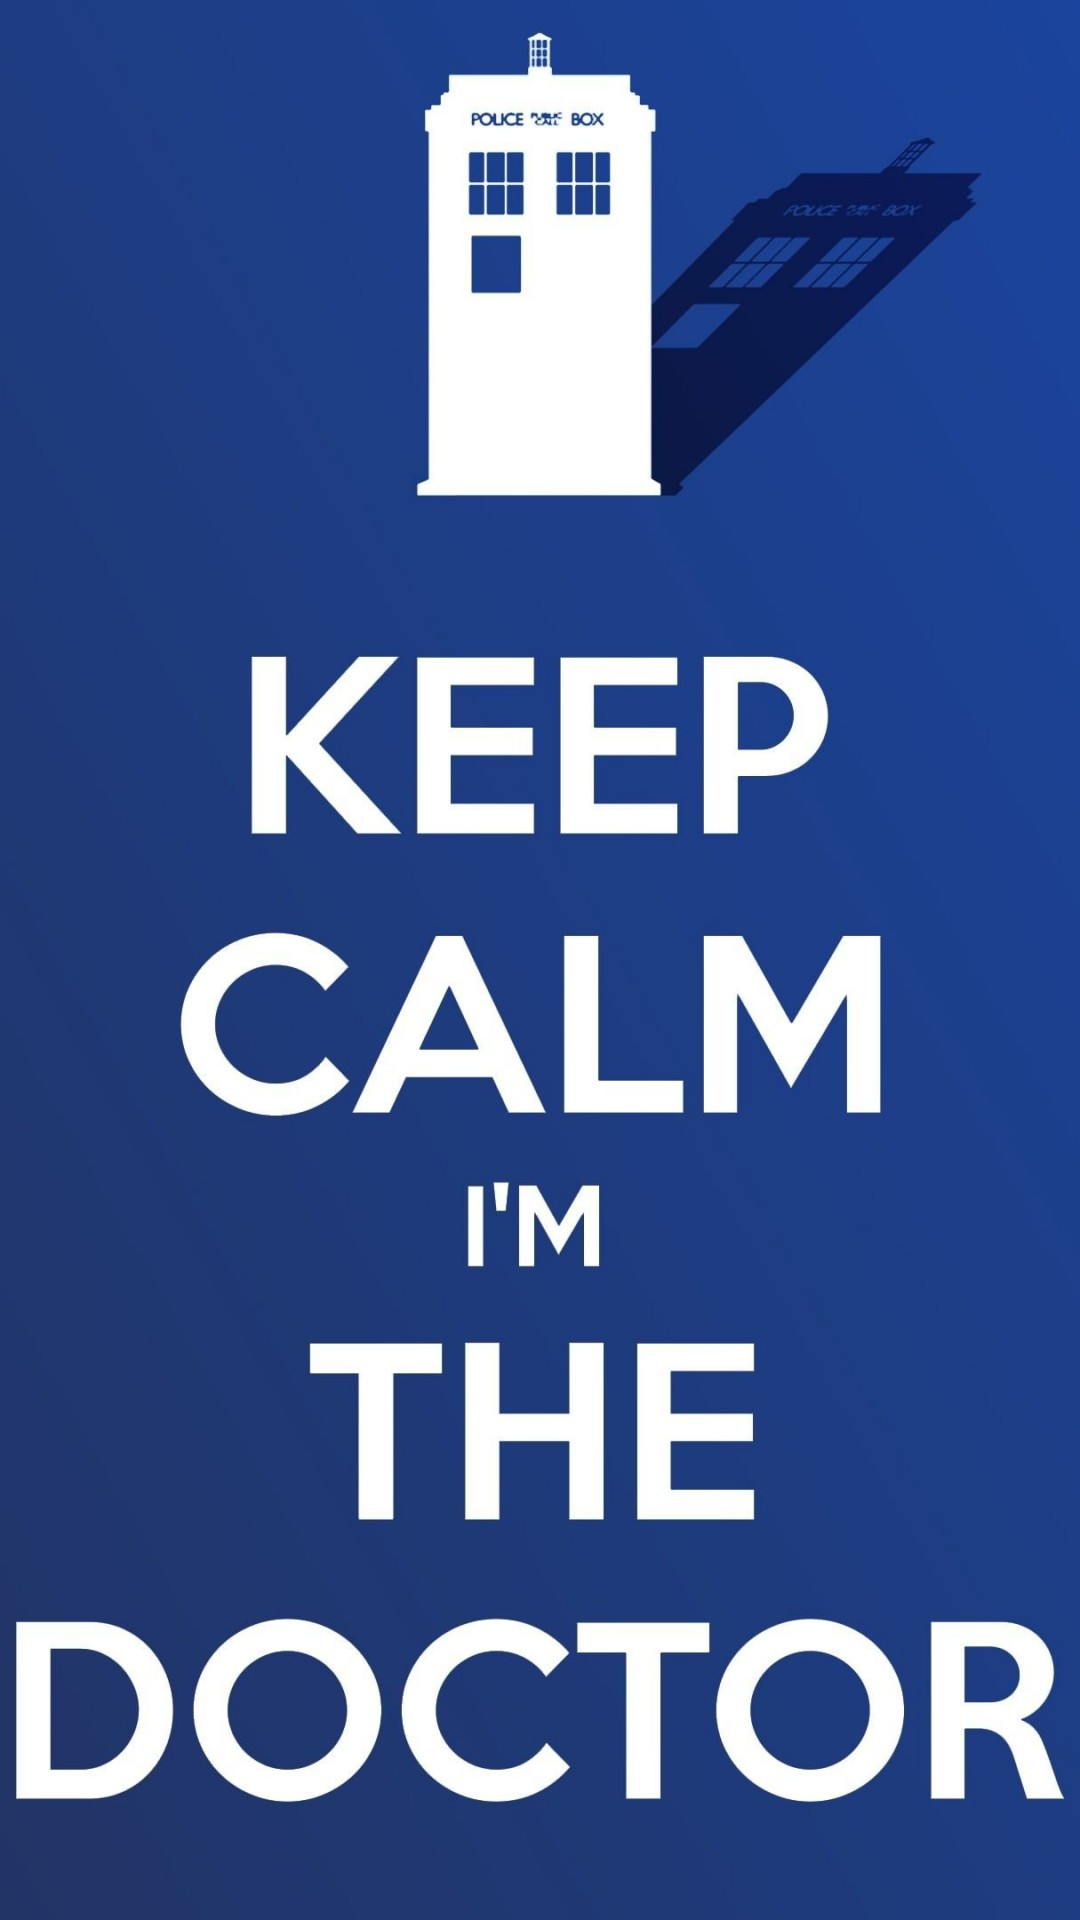 Keep Calm Im The Doctor Wallpaper for Google Nexus 5